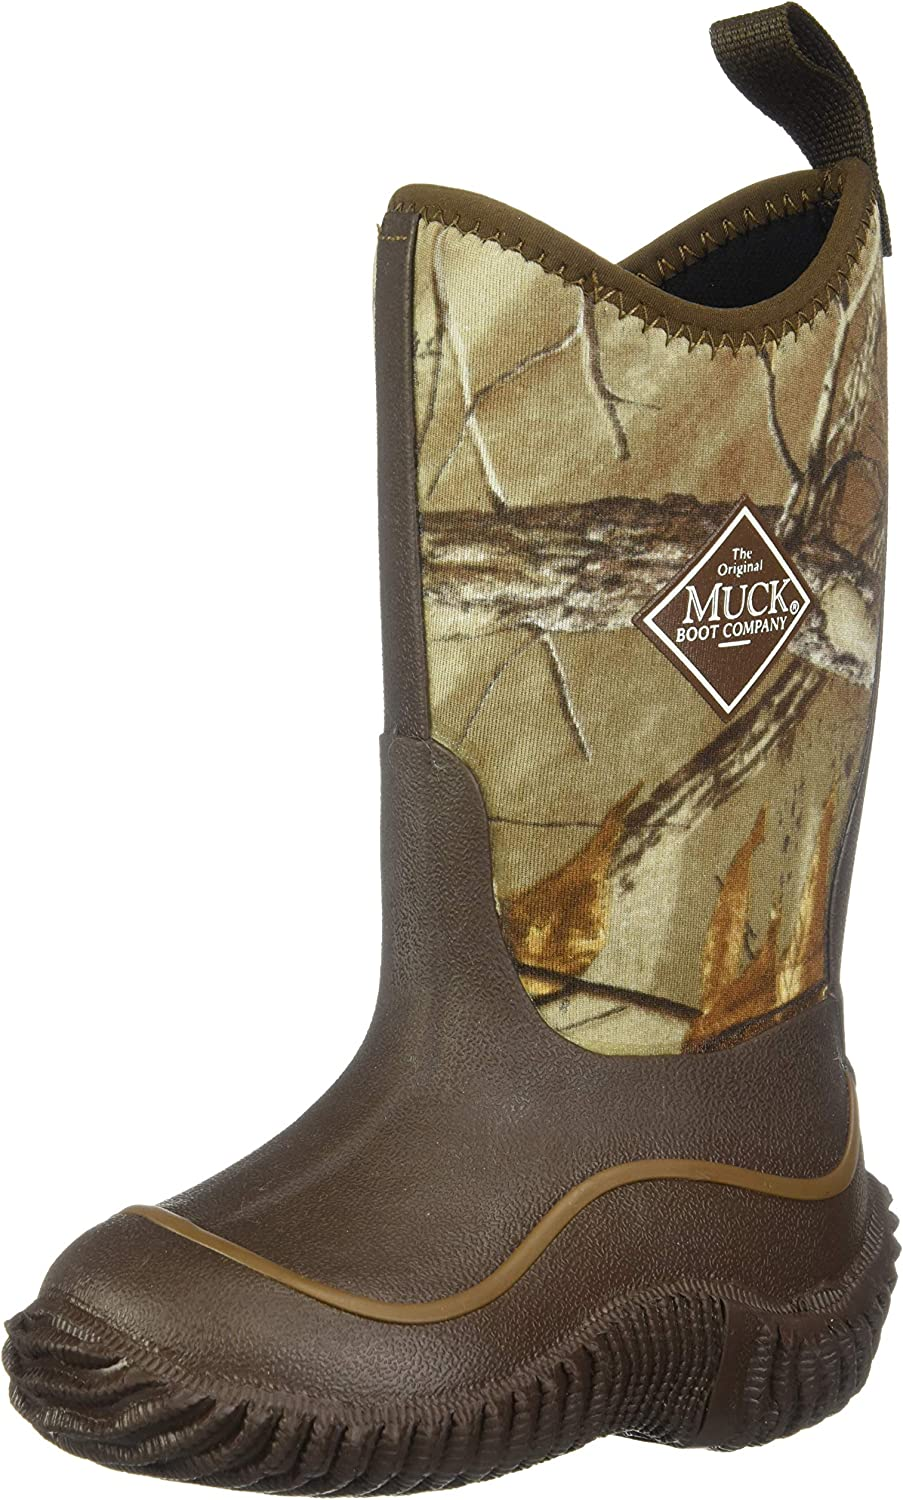 | Muck Hale Multi-Season Kids' Rubber Boots, 7 M US Big Kid, Brown with Realtree XTRA Print | Snow Boots